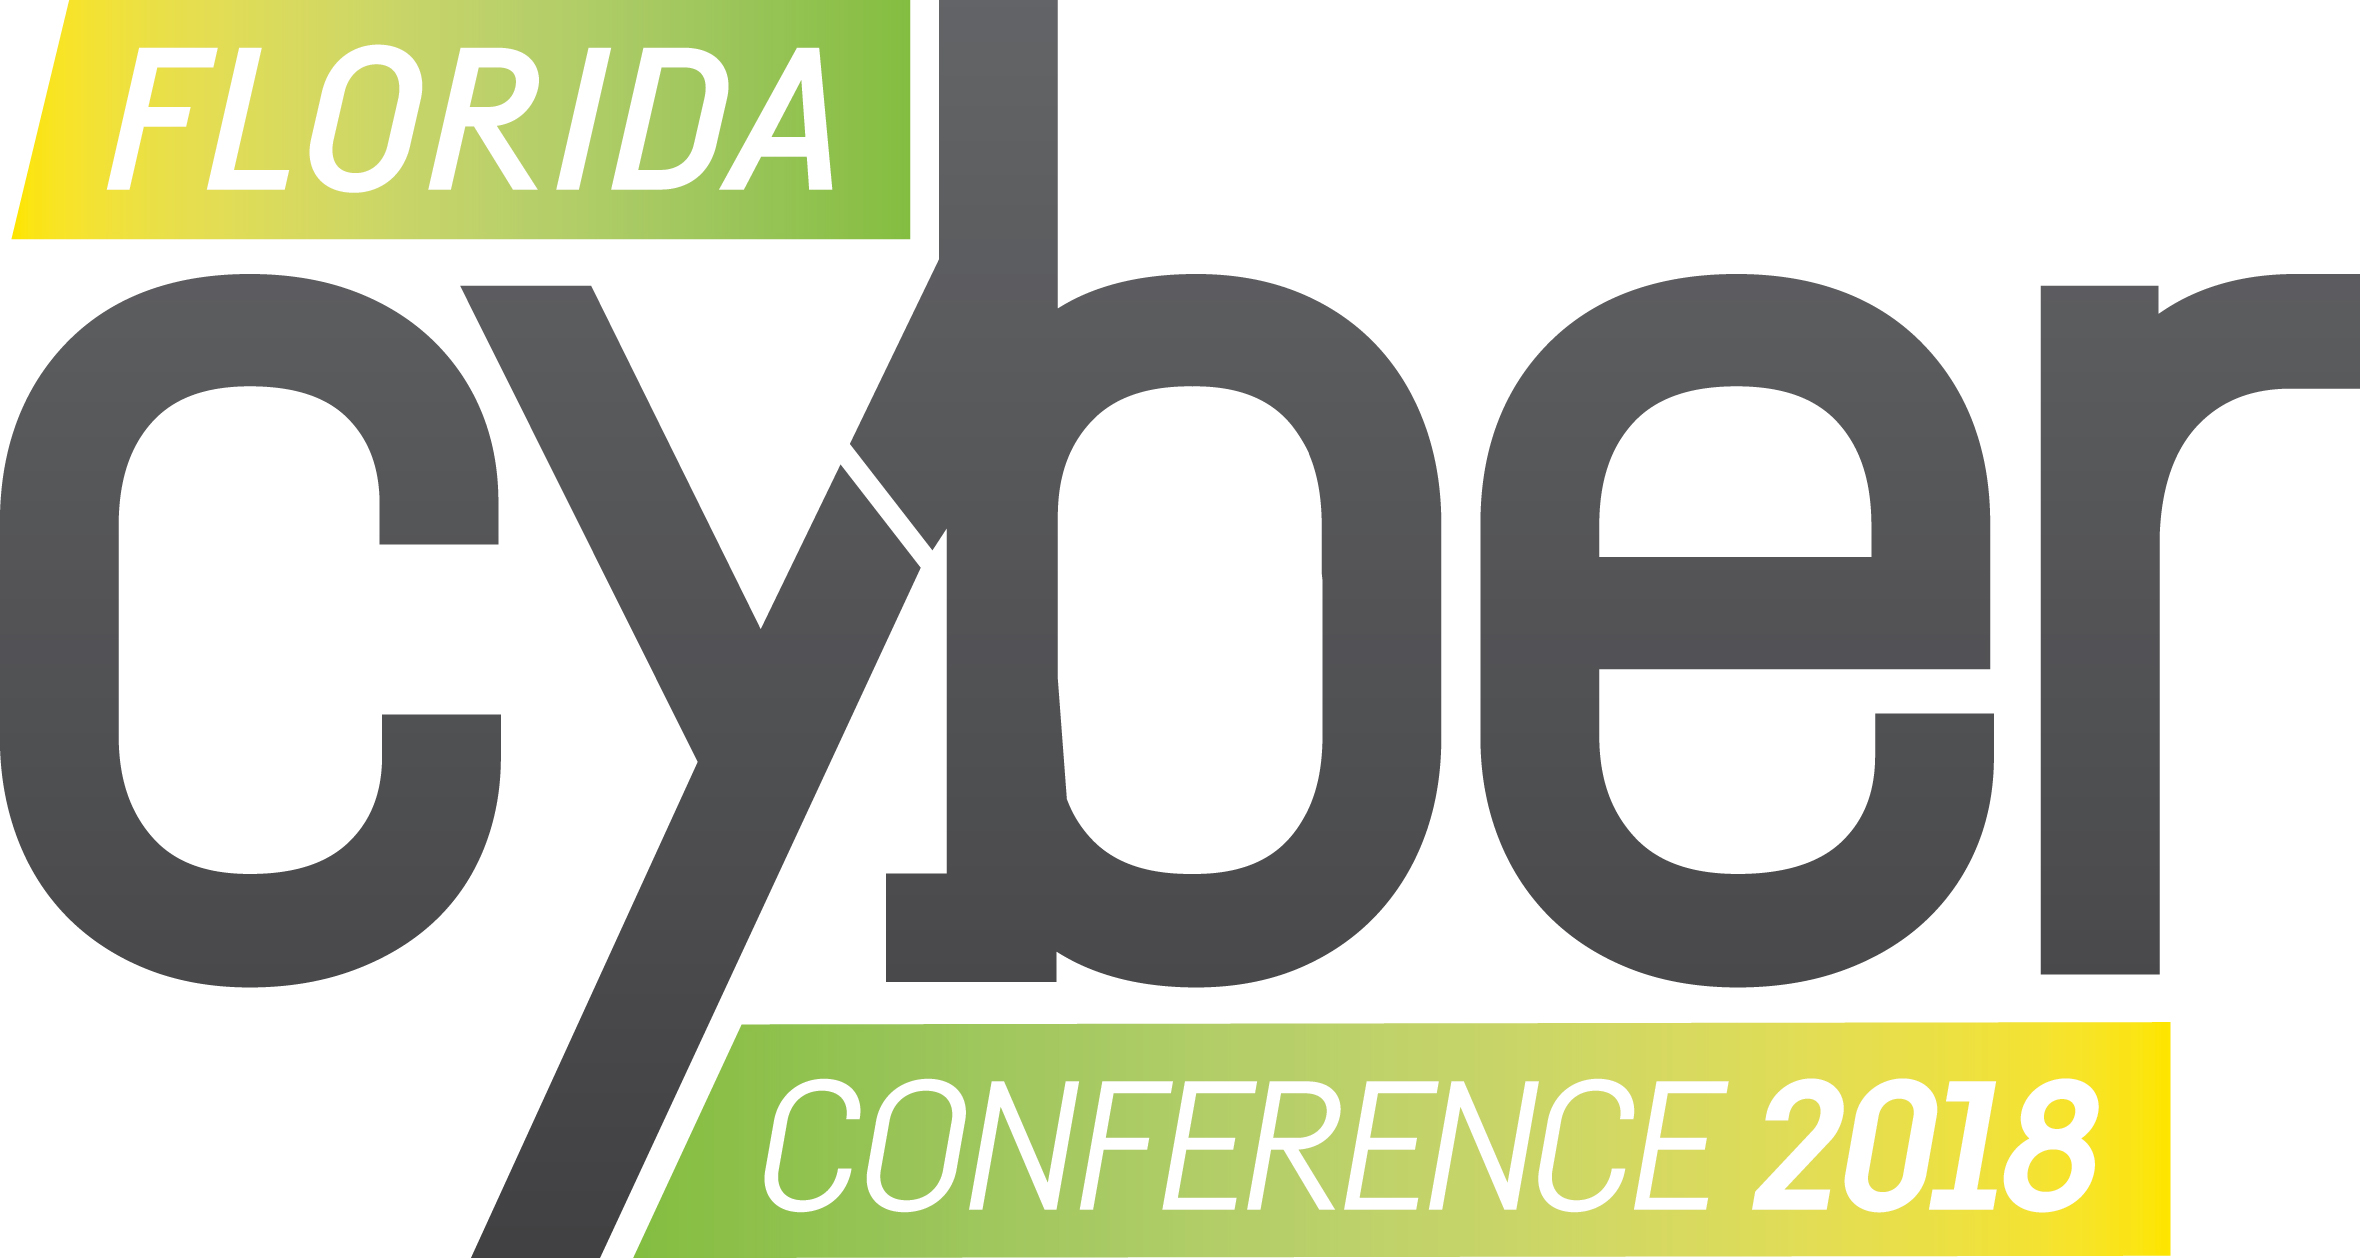 FL Center for Cybersecurity 2018 Annual Conference logo